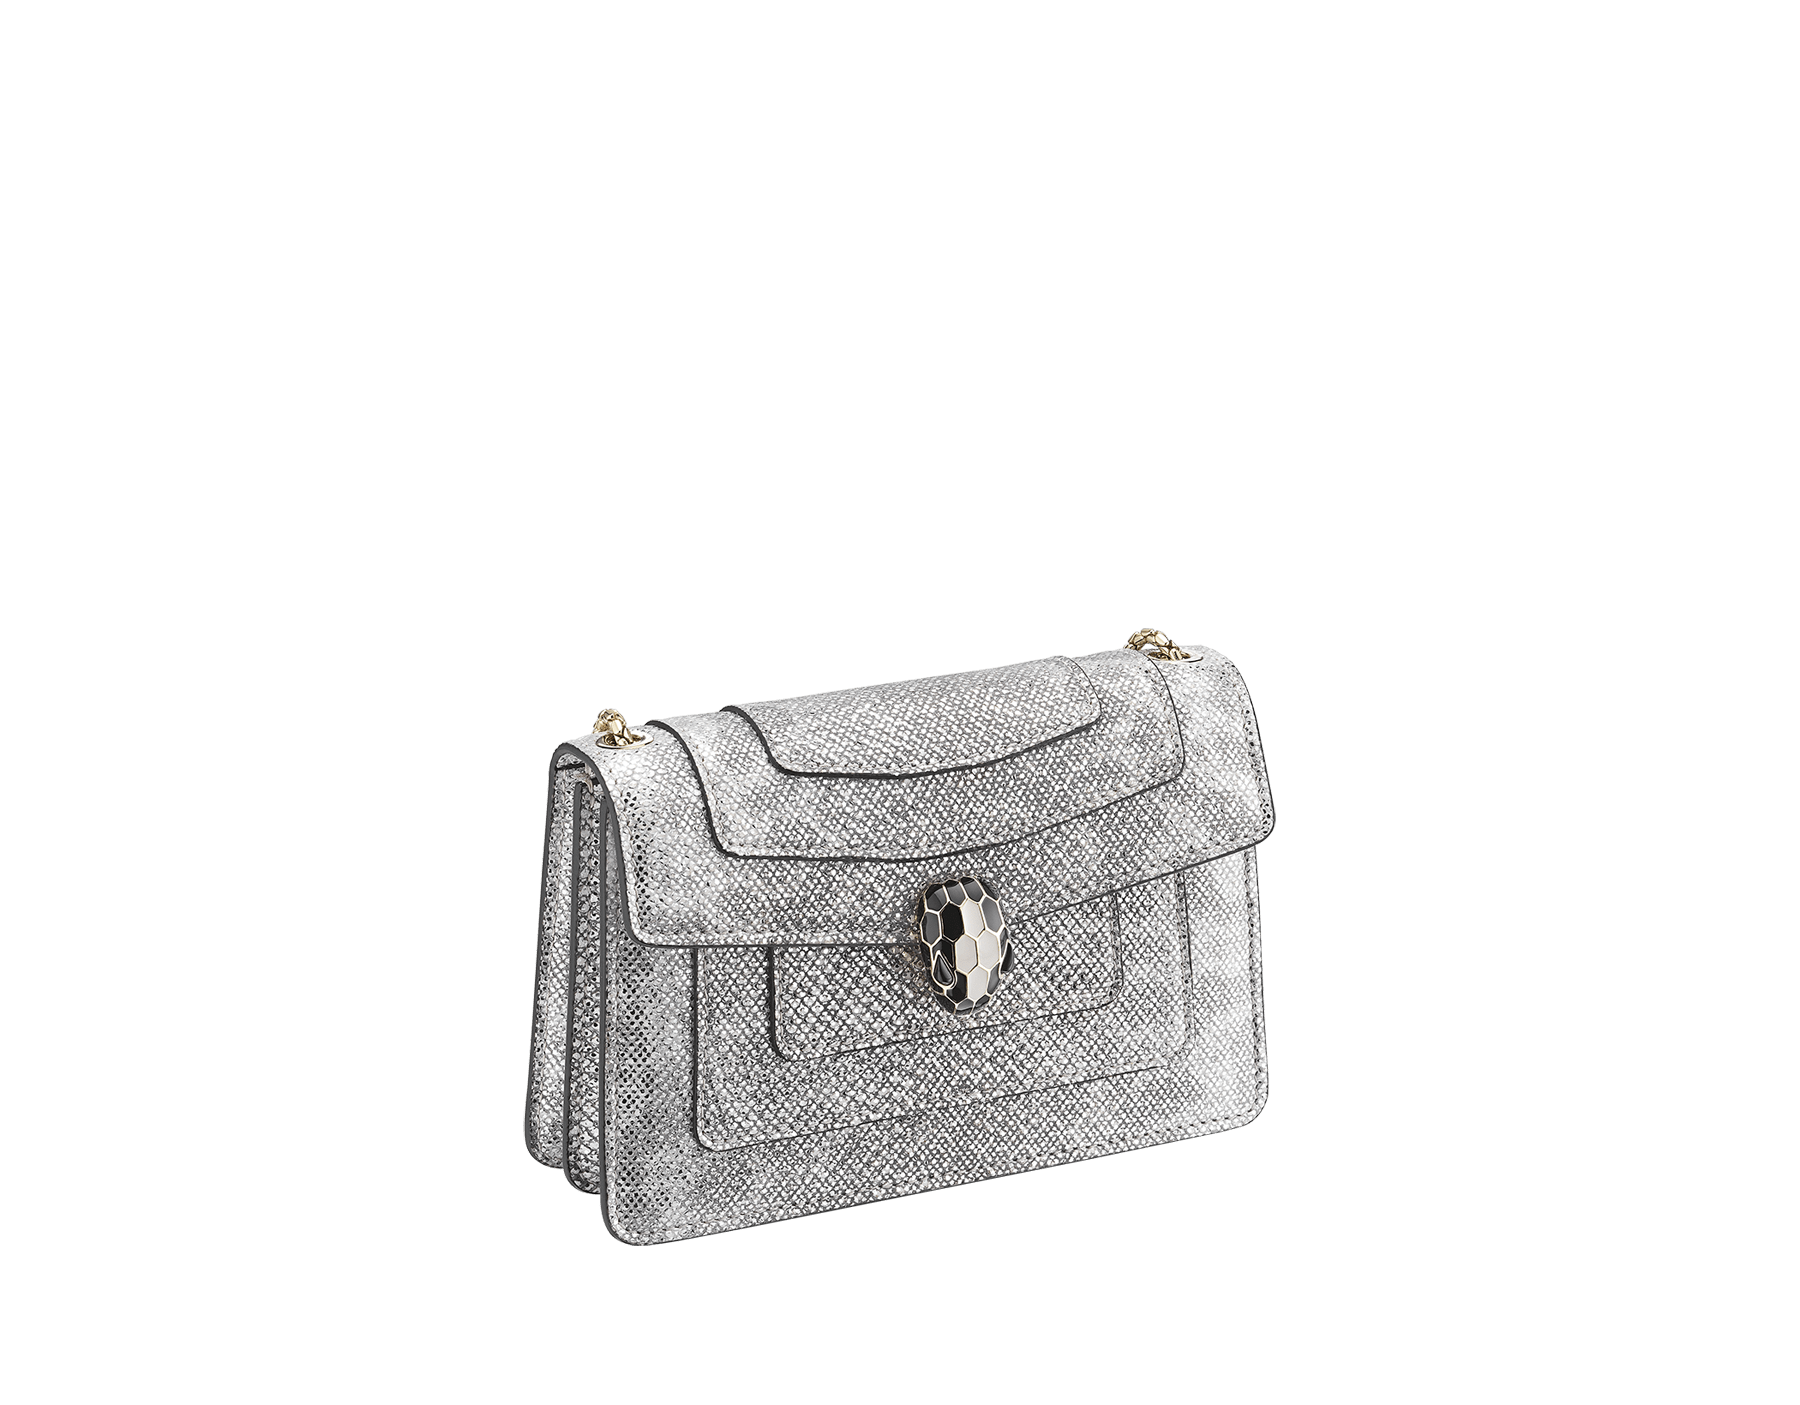 Serpenti Forever mini crossbody bag in white agate metallic karung skin. Brass light gold-plated snake head closure in black and white enamel with black onyx eyes. 986-MK image 2